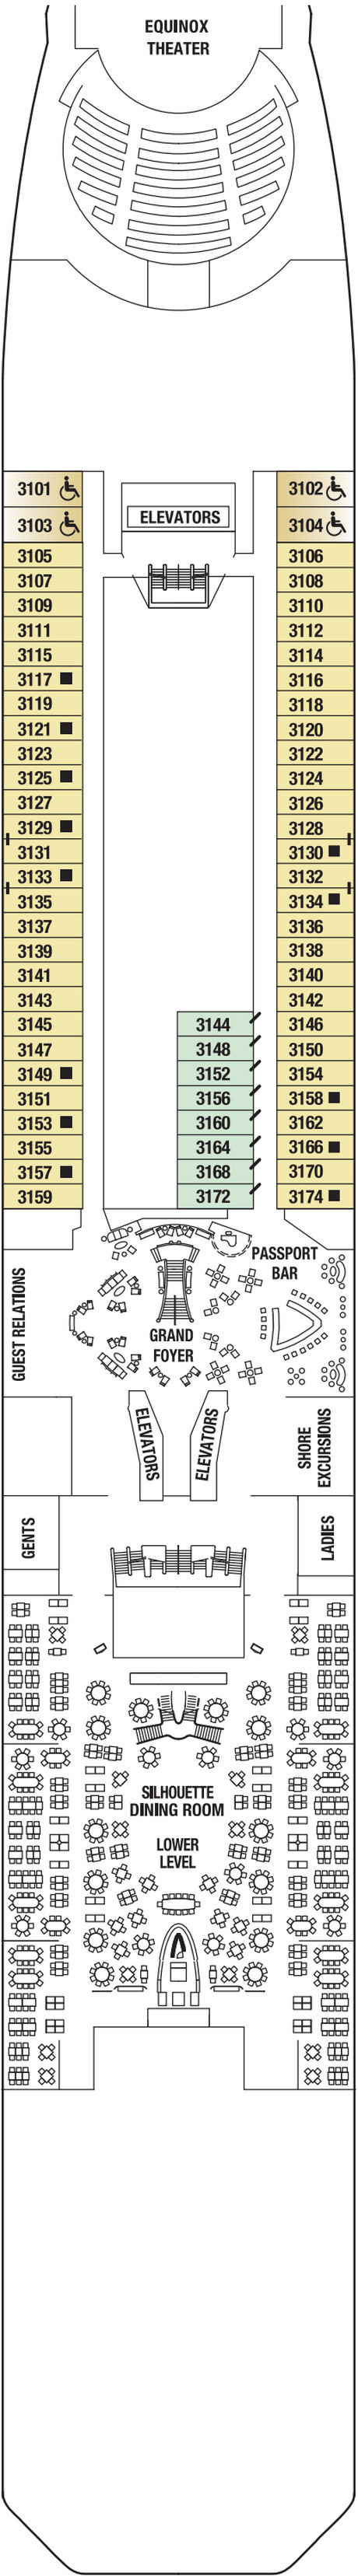 Celebrity Equinox Plaza Deck  layout